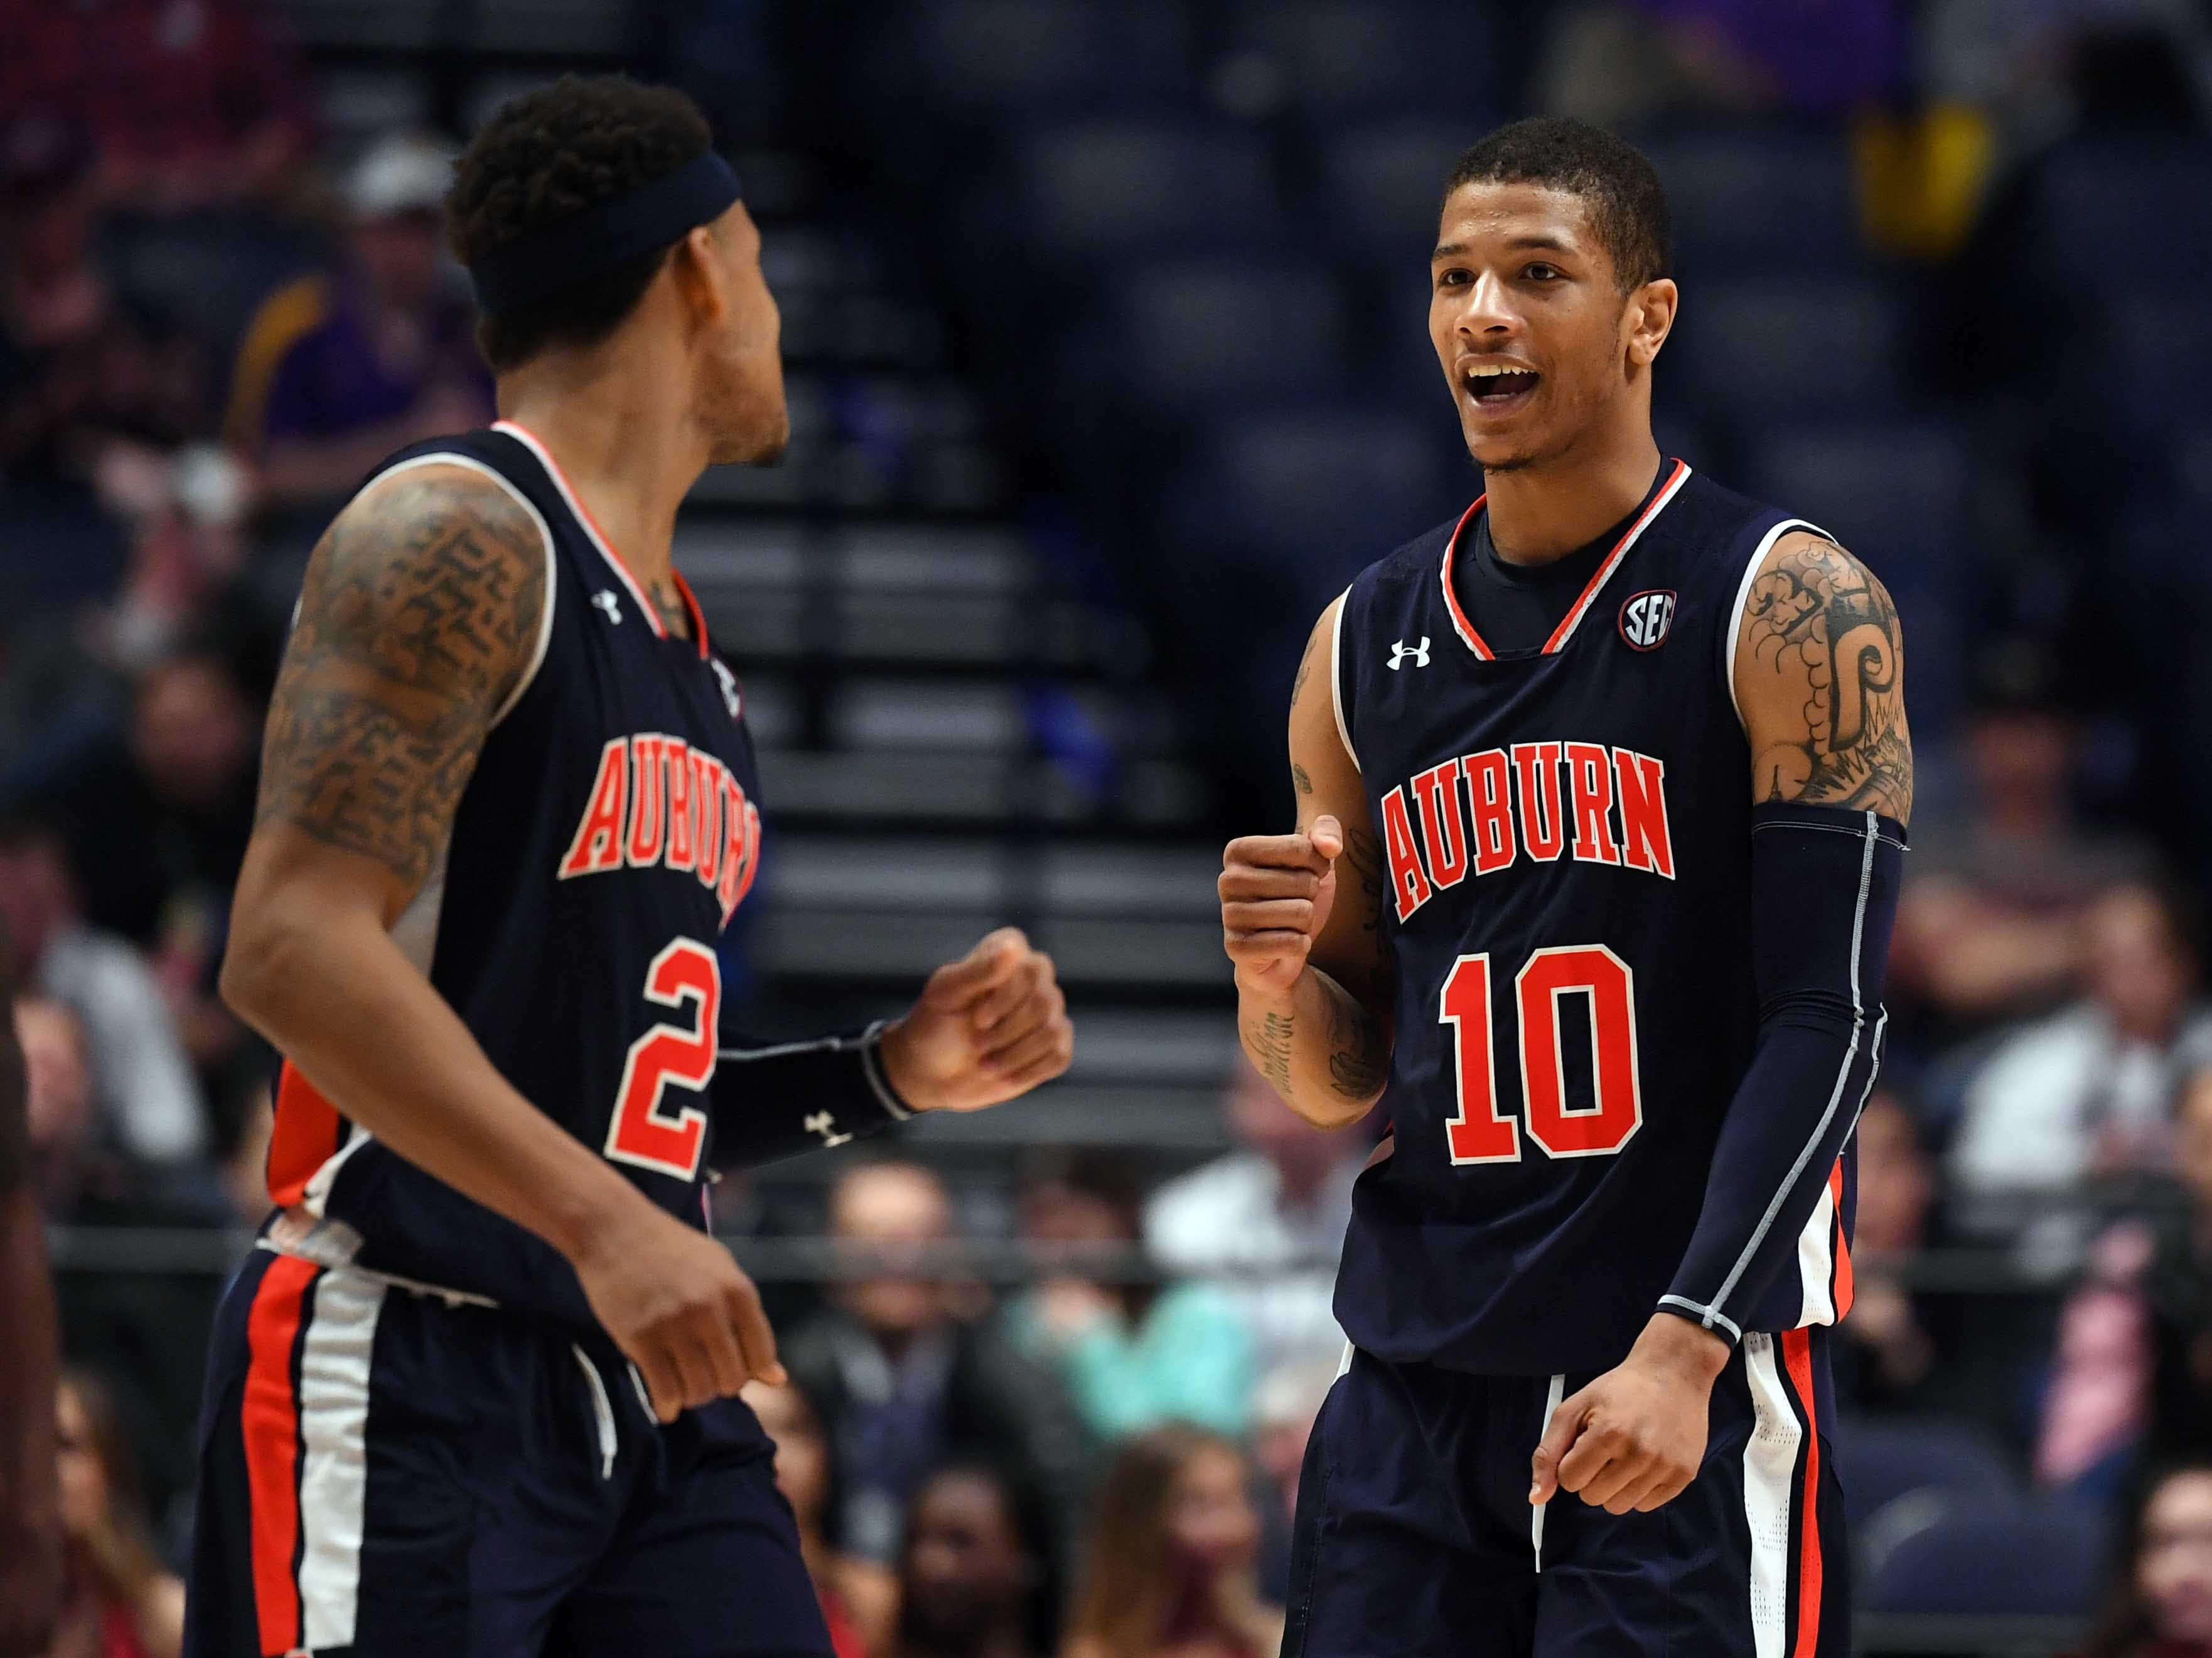 Mar 15, 2019; Nashville, TN, USA; Auburn Tigers guard Samir Doughty (10) and Auburn Tigers guard Bryce Brown (2) celebrate during the second half against the South Carolina Gamecocks in the SEC conference tournament at Bridgestone Arena. Mandatory Credit: Christopher Hanewinckel-USA TODAY Sports